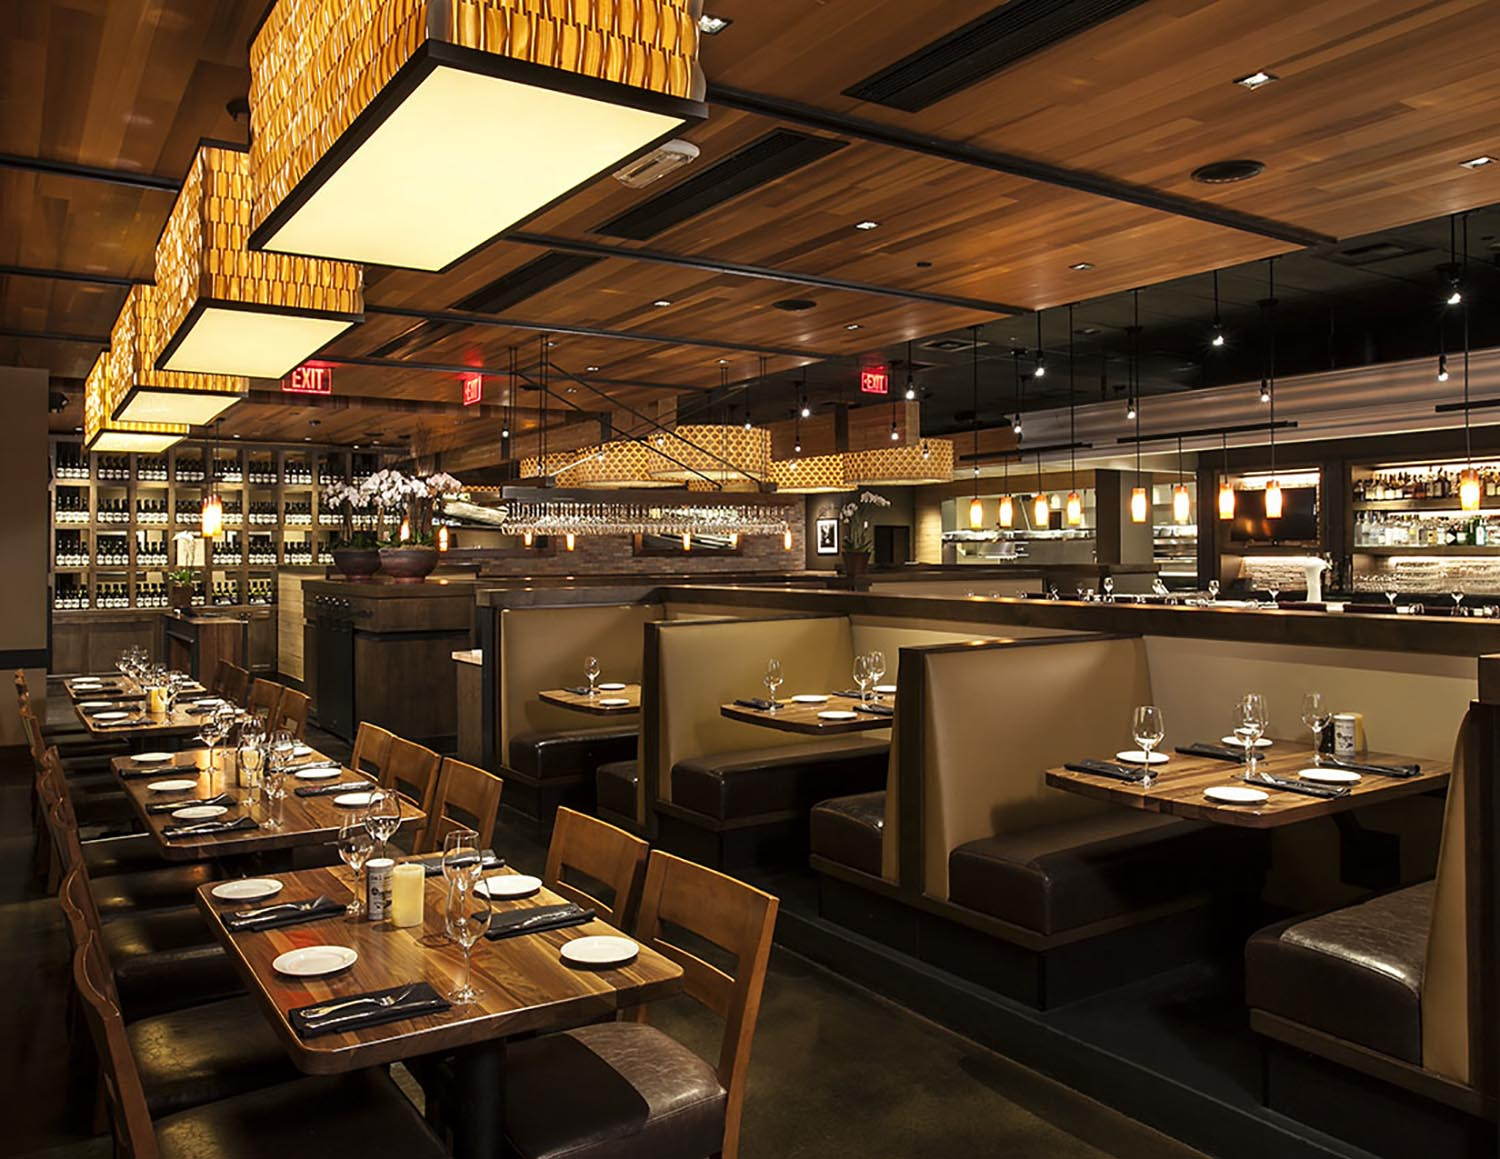 Mountain view restaurant paul martin 39 s american grill for American cuisine restaurants